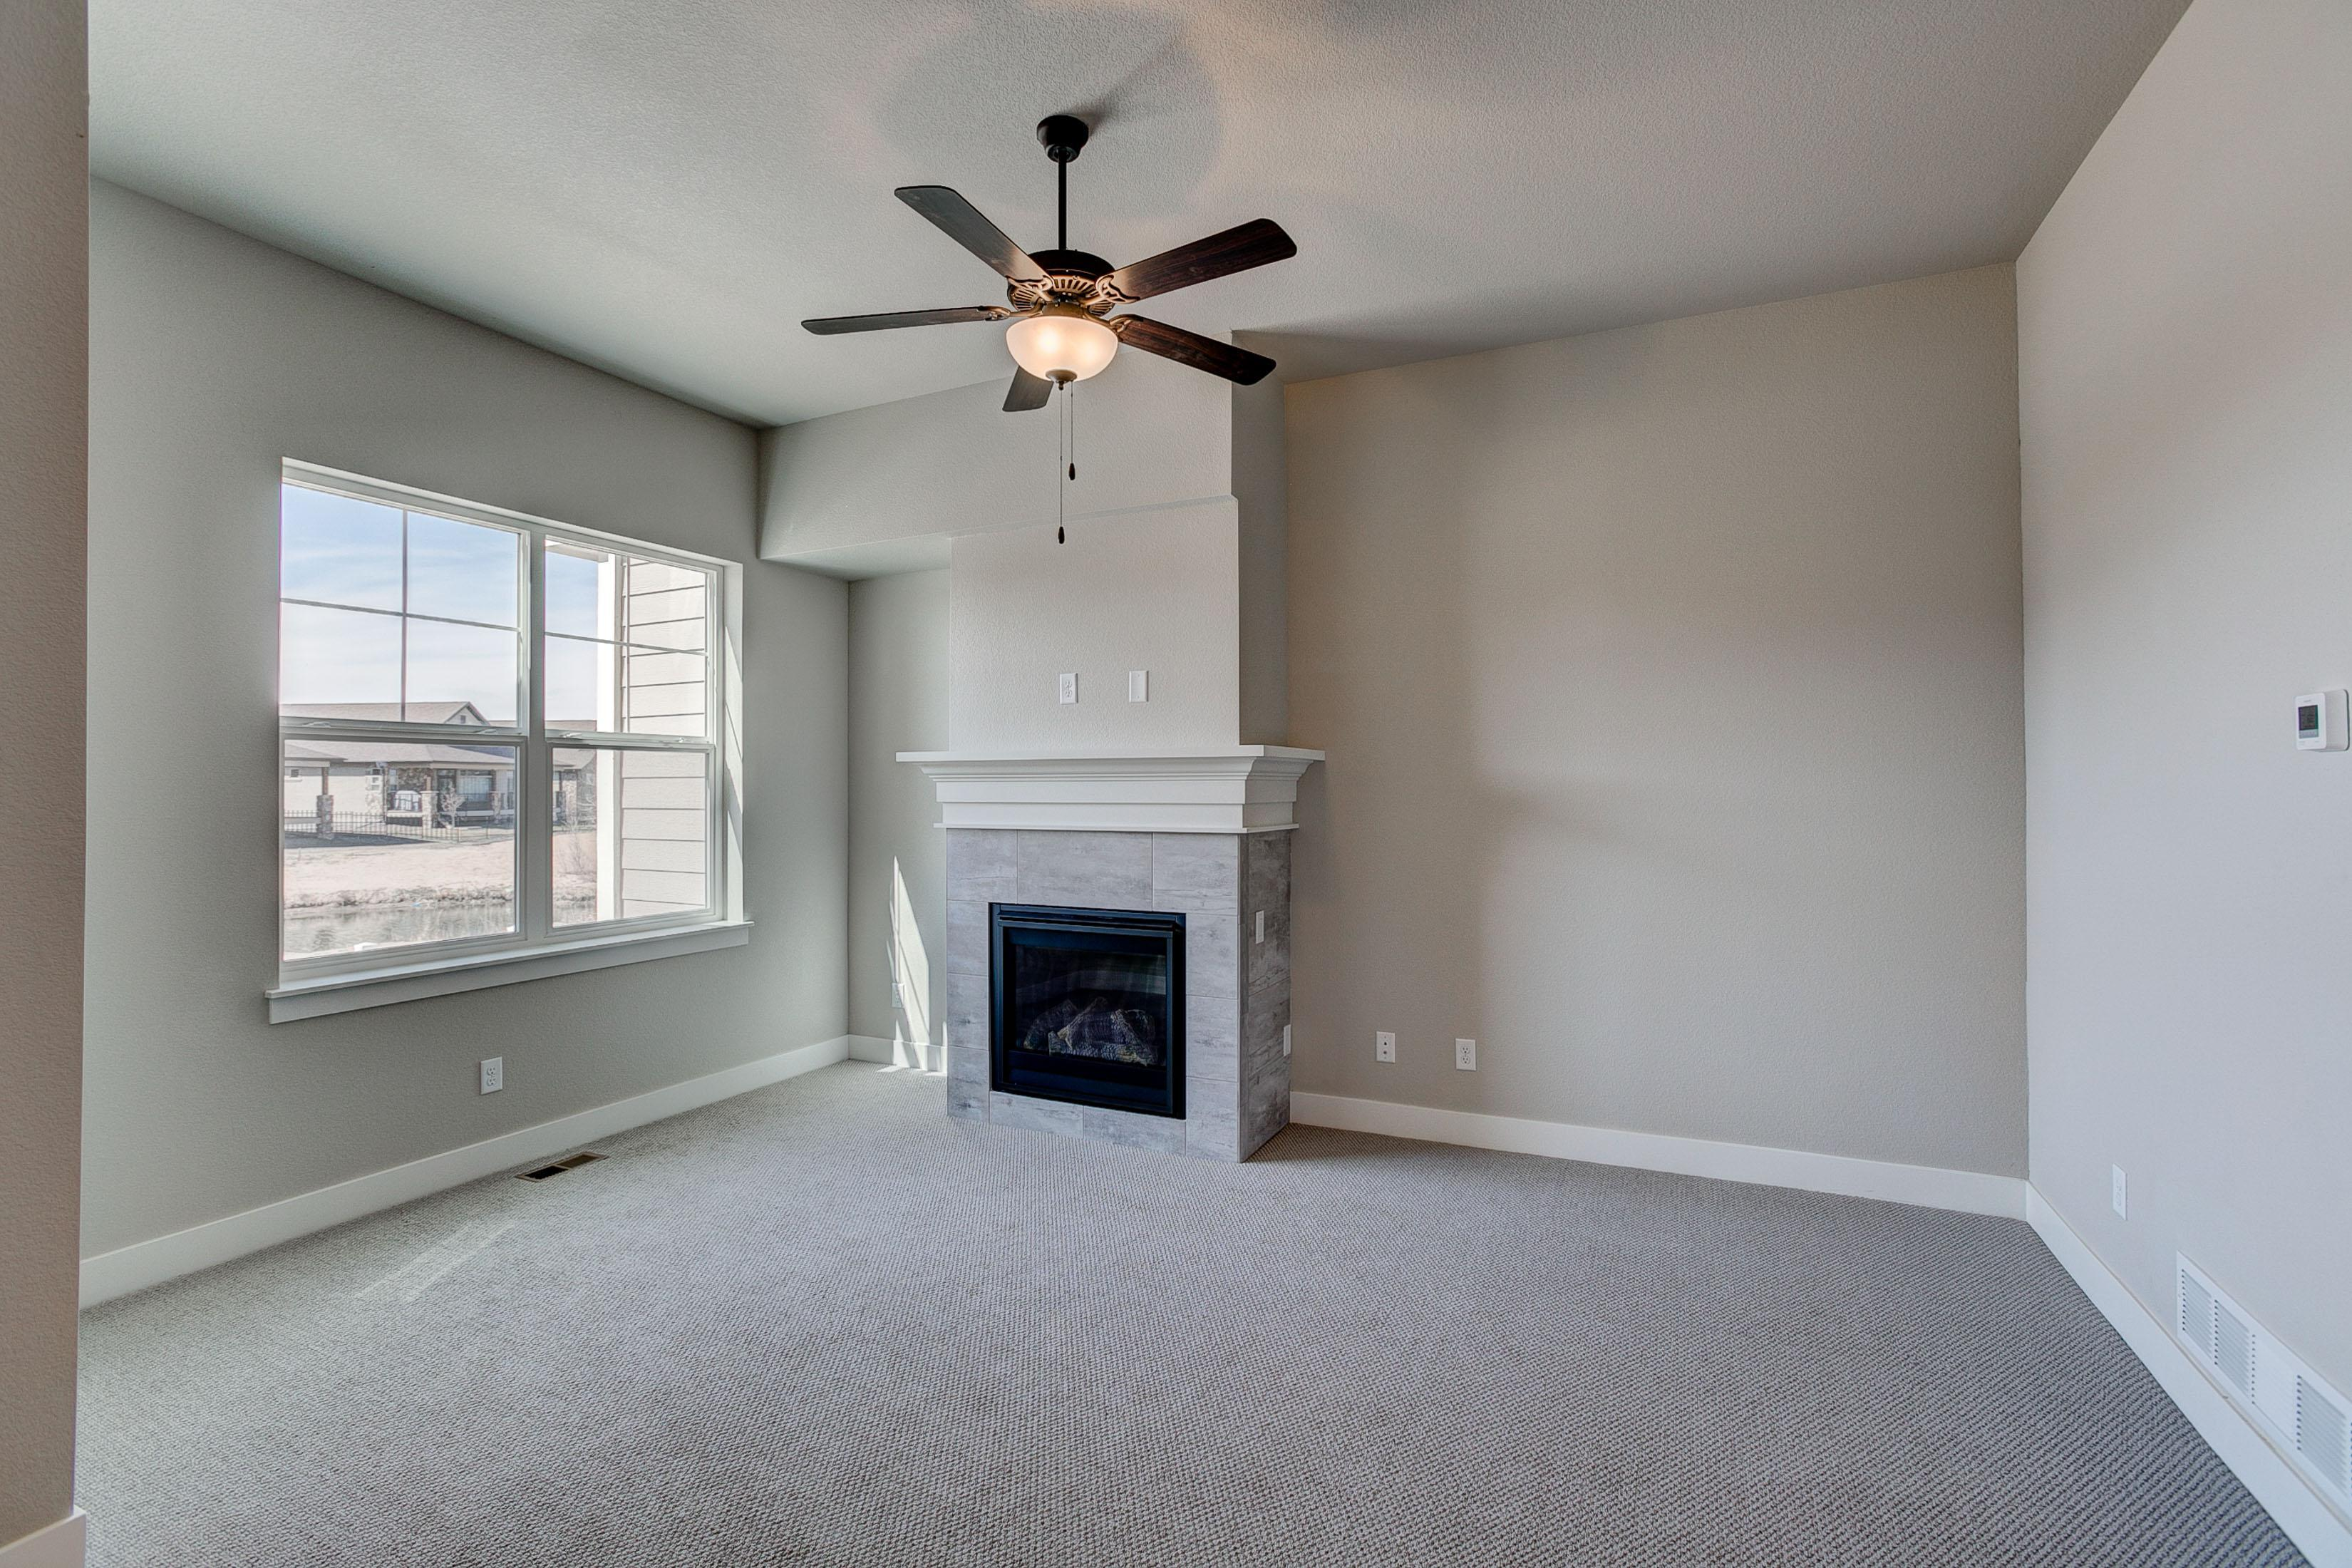 New Condo & Townhome Construction in Windsor, CO | NewHomeSource